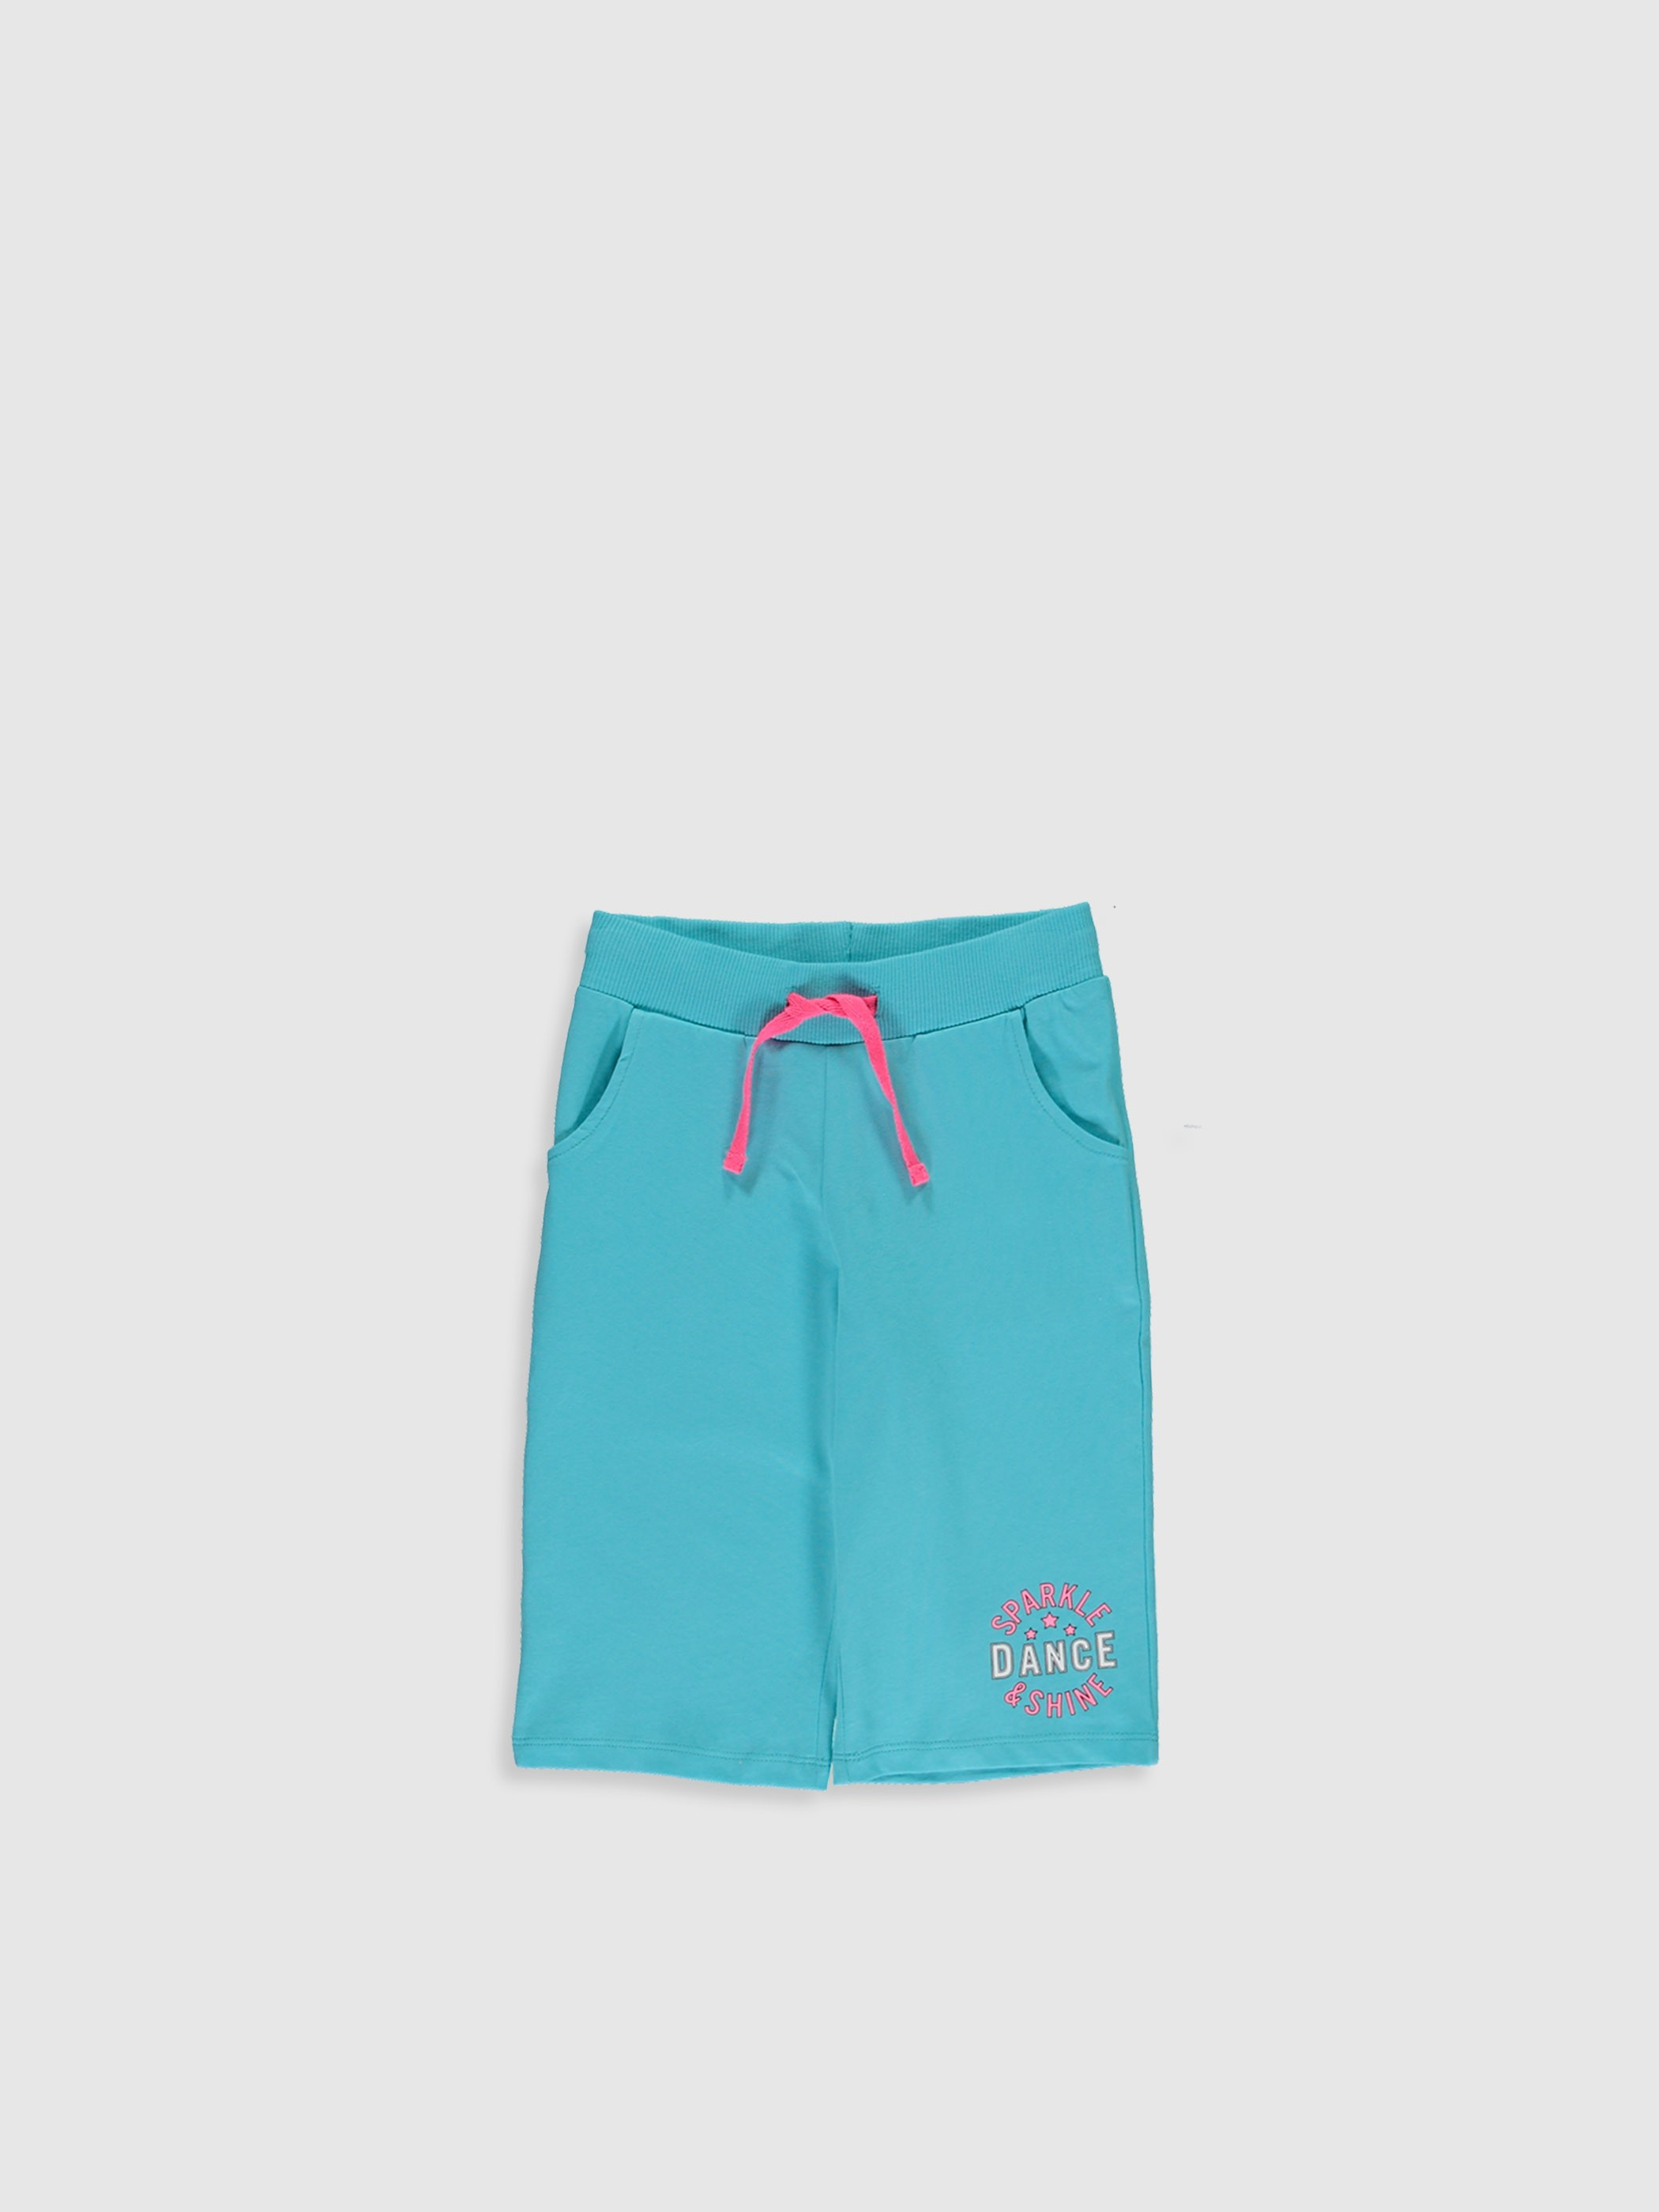 TURQUOISE - Girl's Printed Shorts - 0S4989Z4